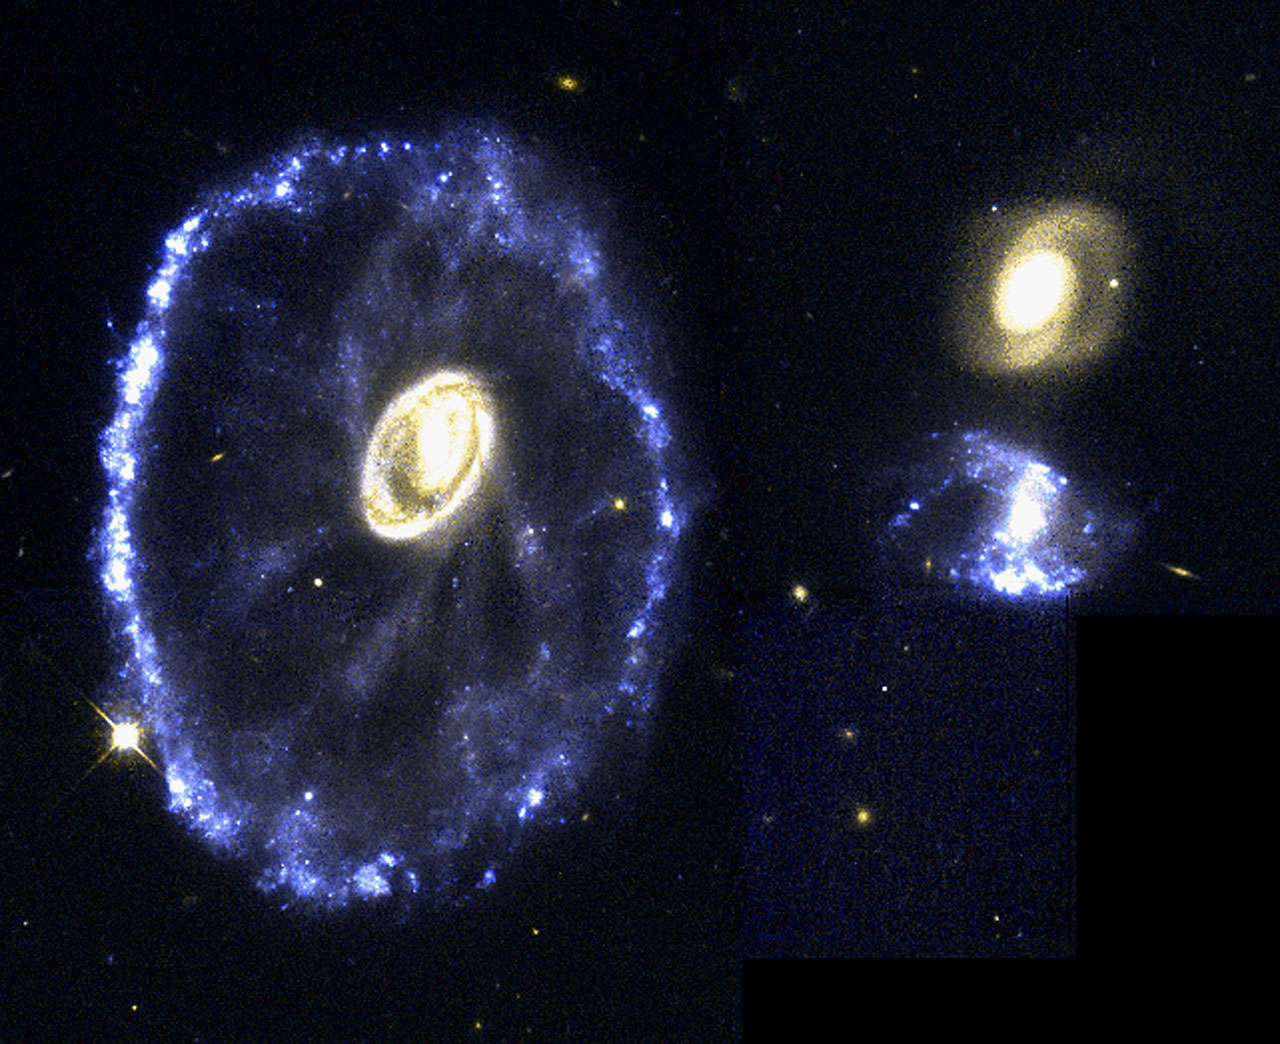 The Cartwheel Galaxy